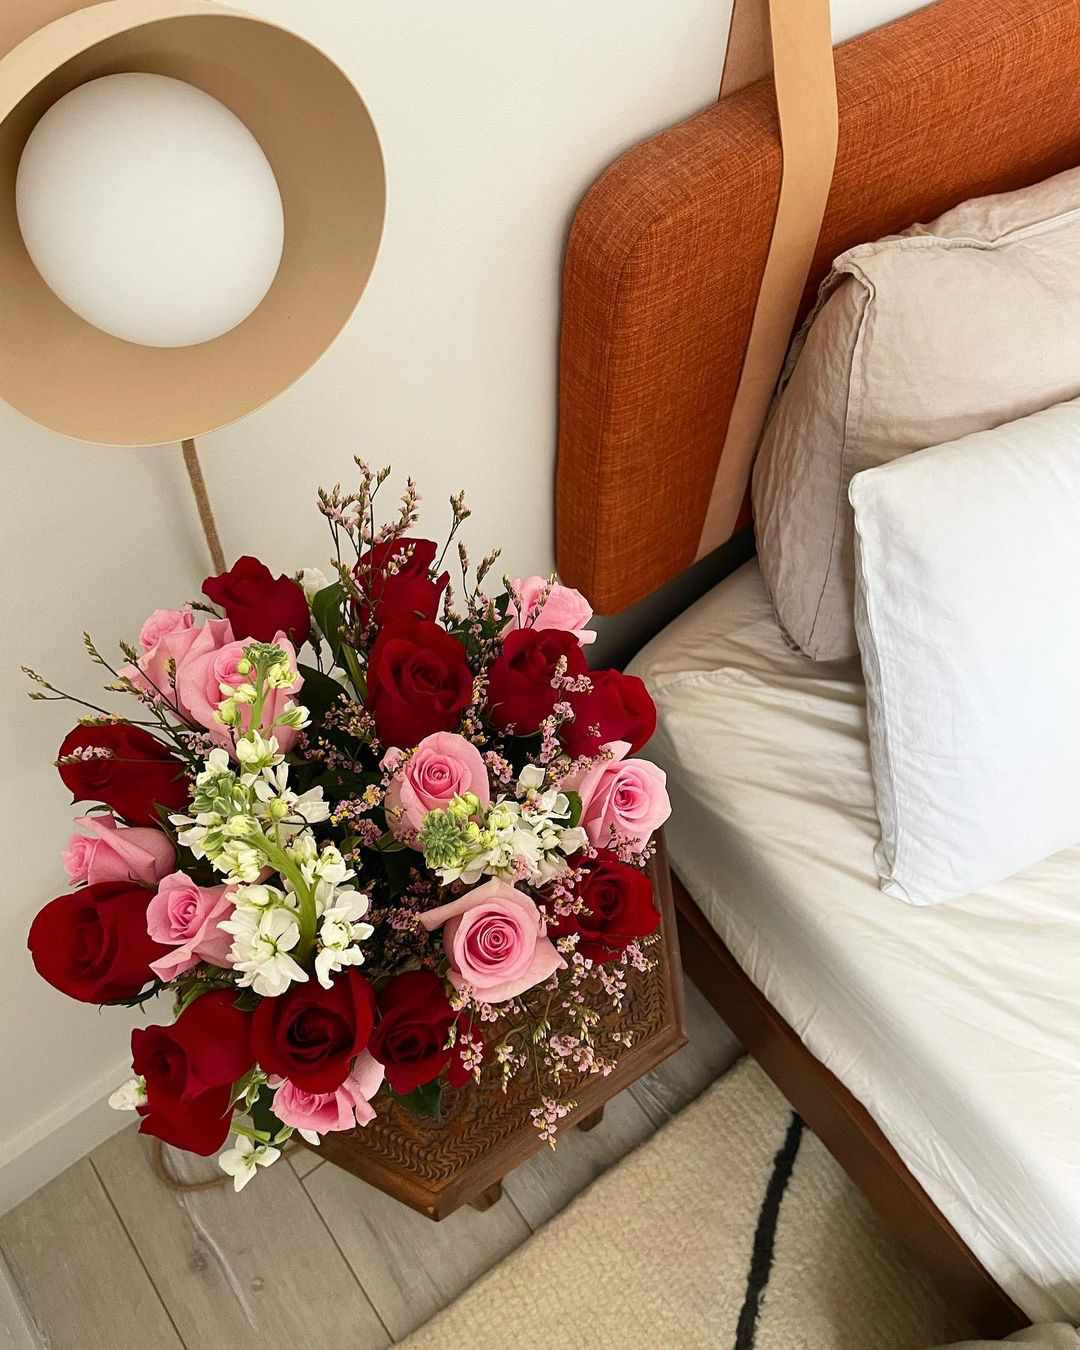 Bedroom with flowers on the side table.